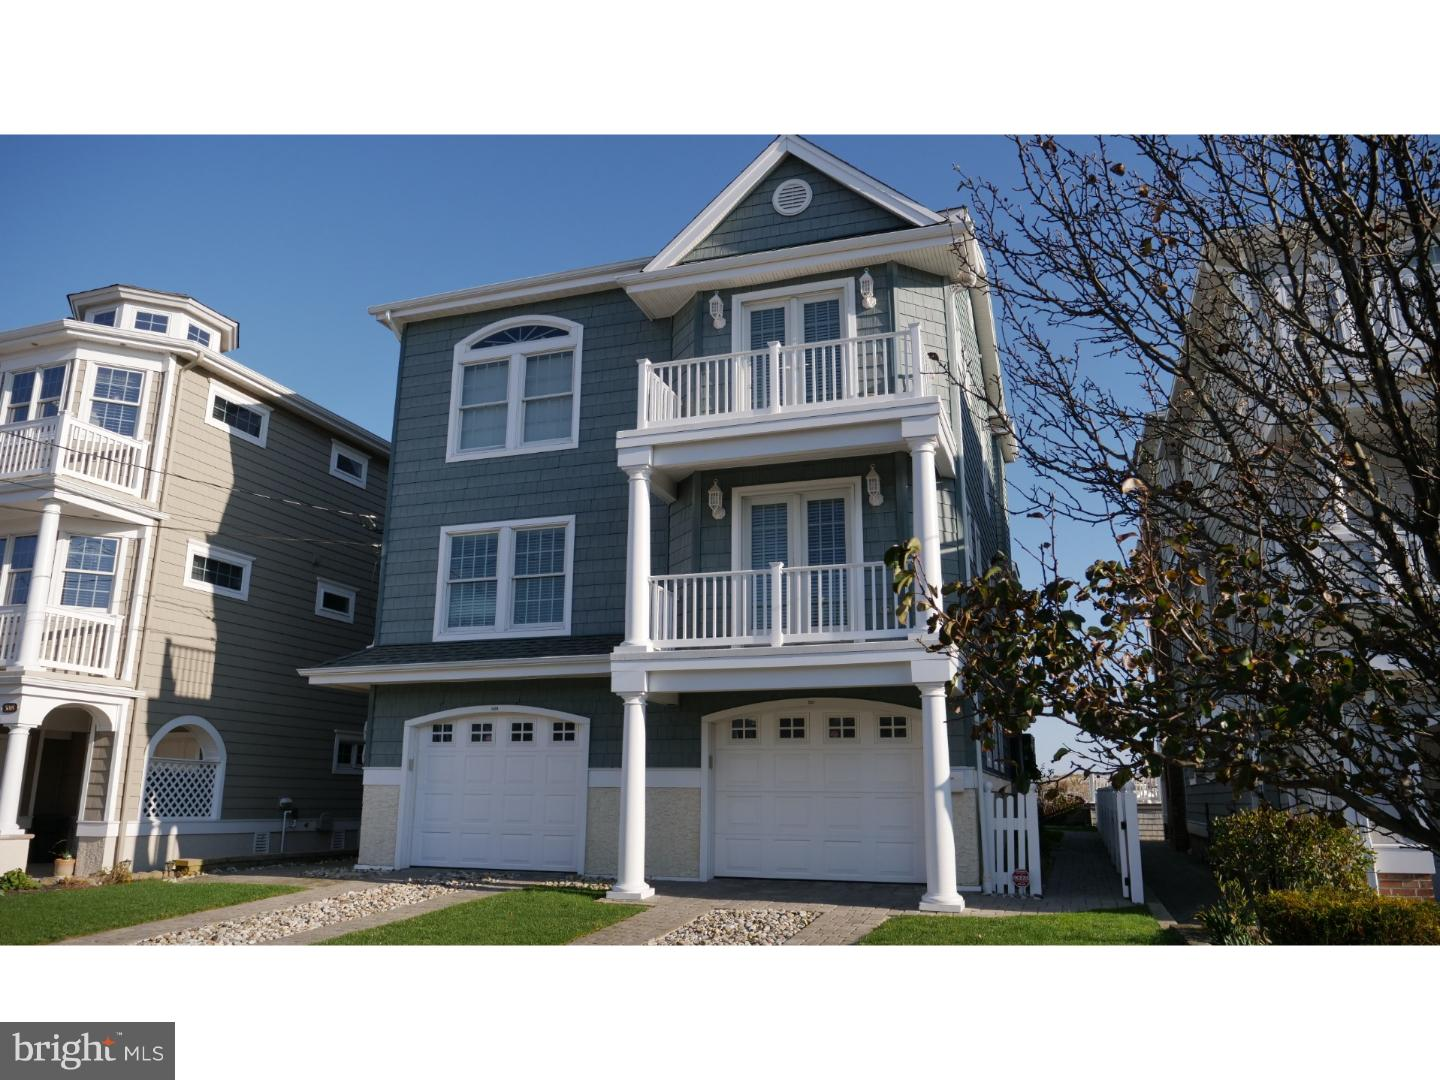 Single Family Home for Sale at 5009 CENTRAL Avenue Ocean City, New Jersey 08226 United StatesMunicipality: Ocean City